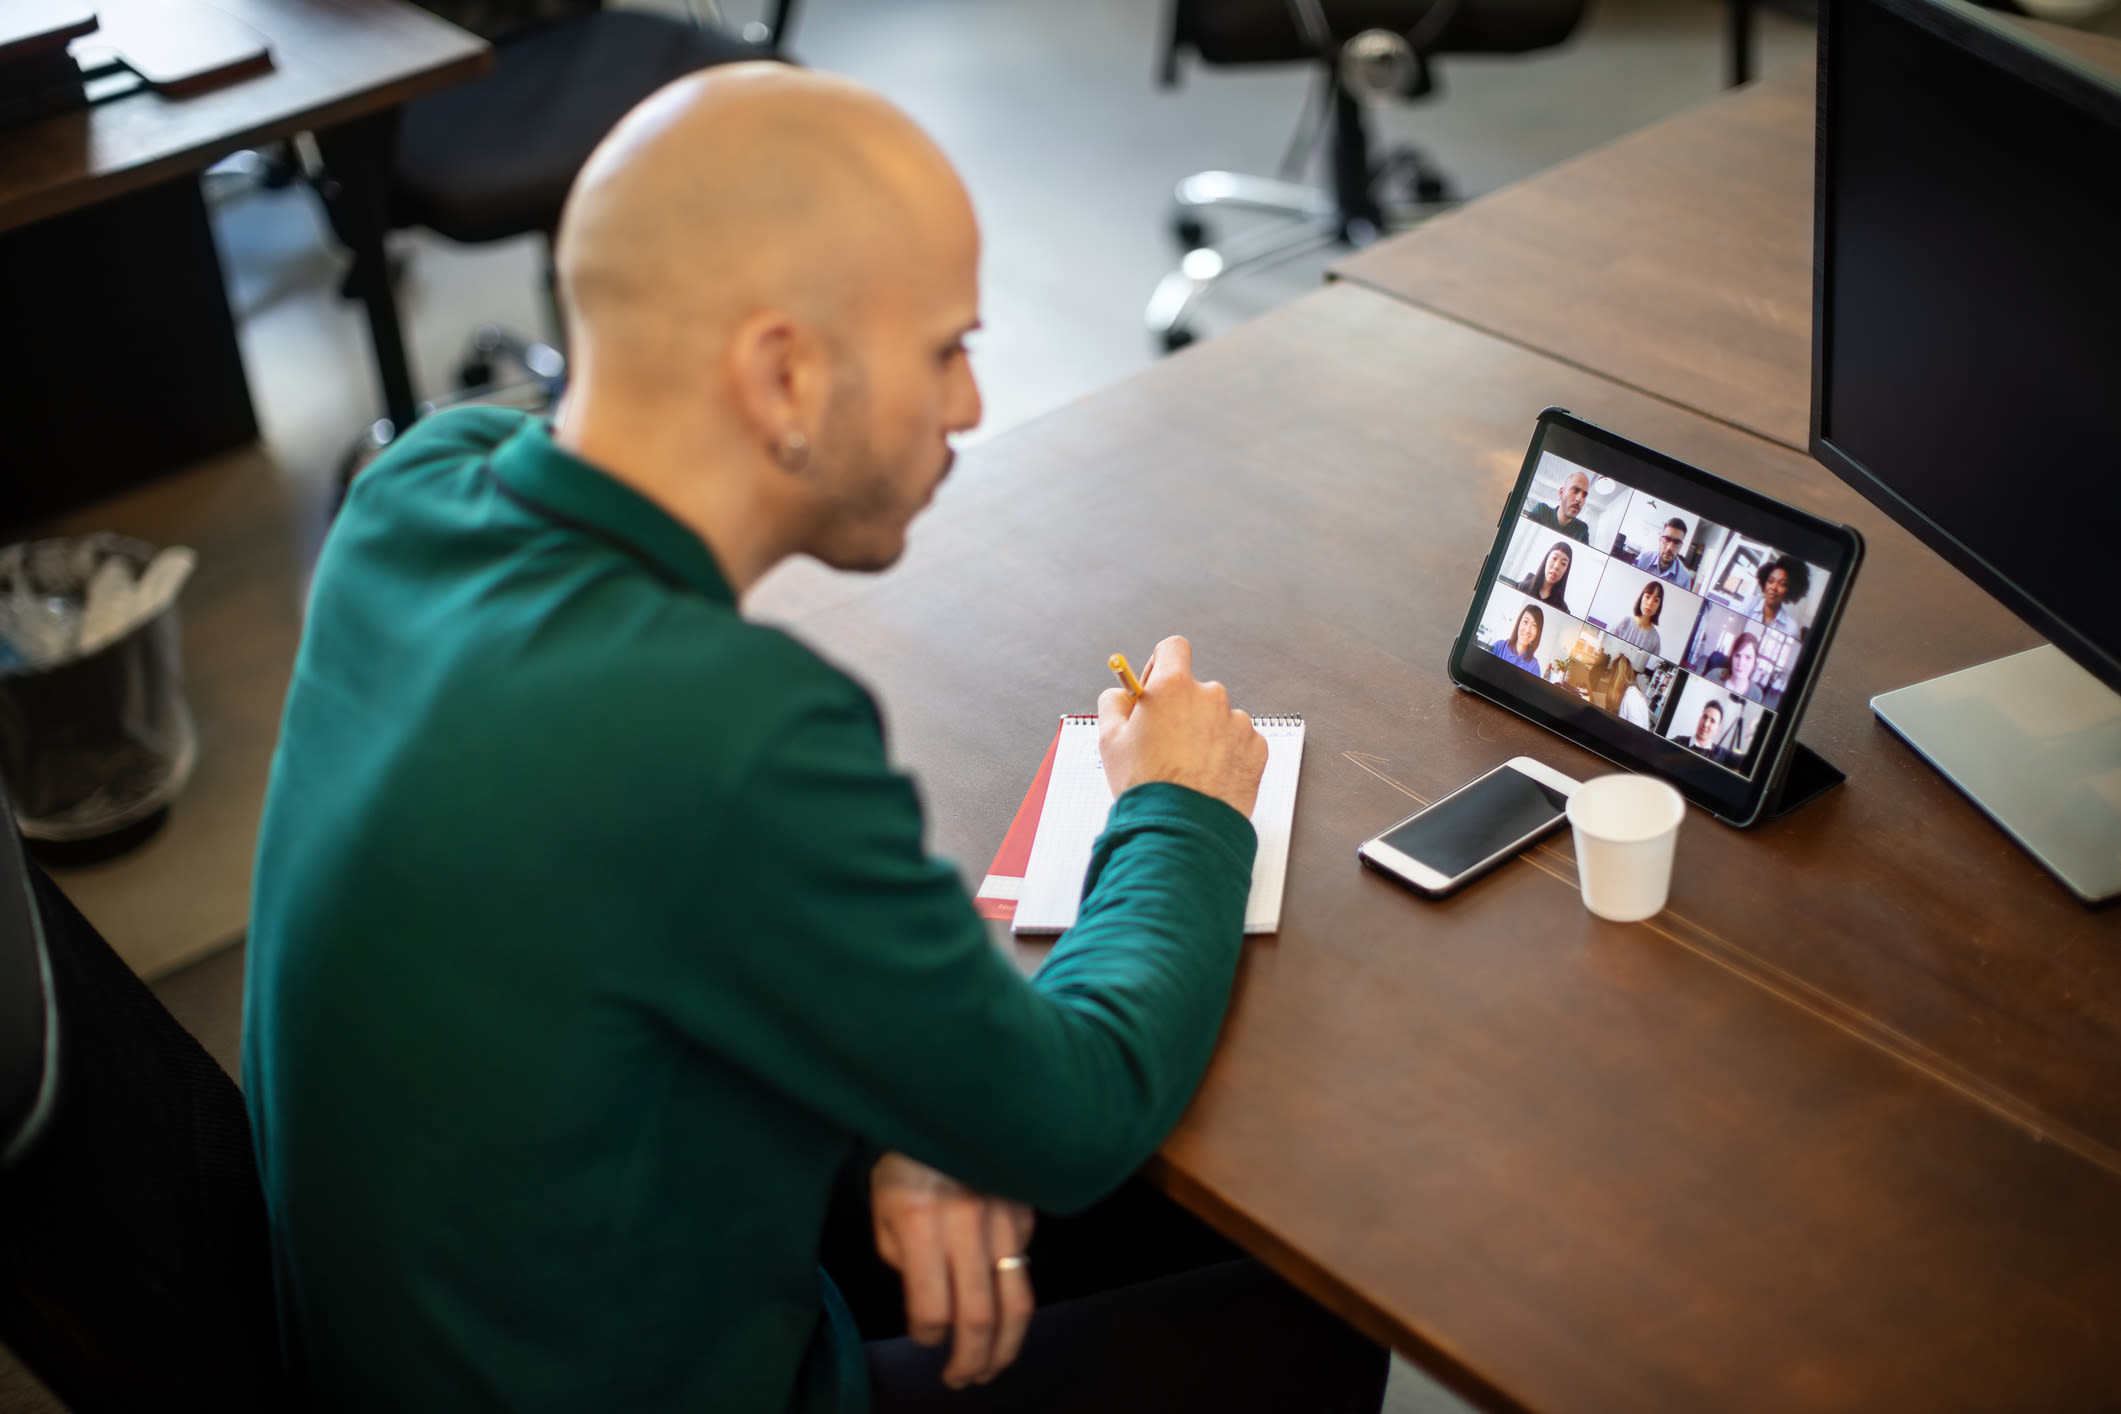 A man on a video conference